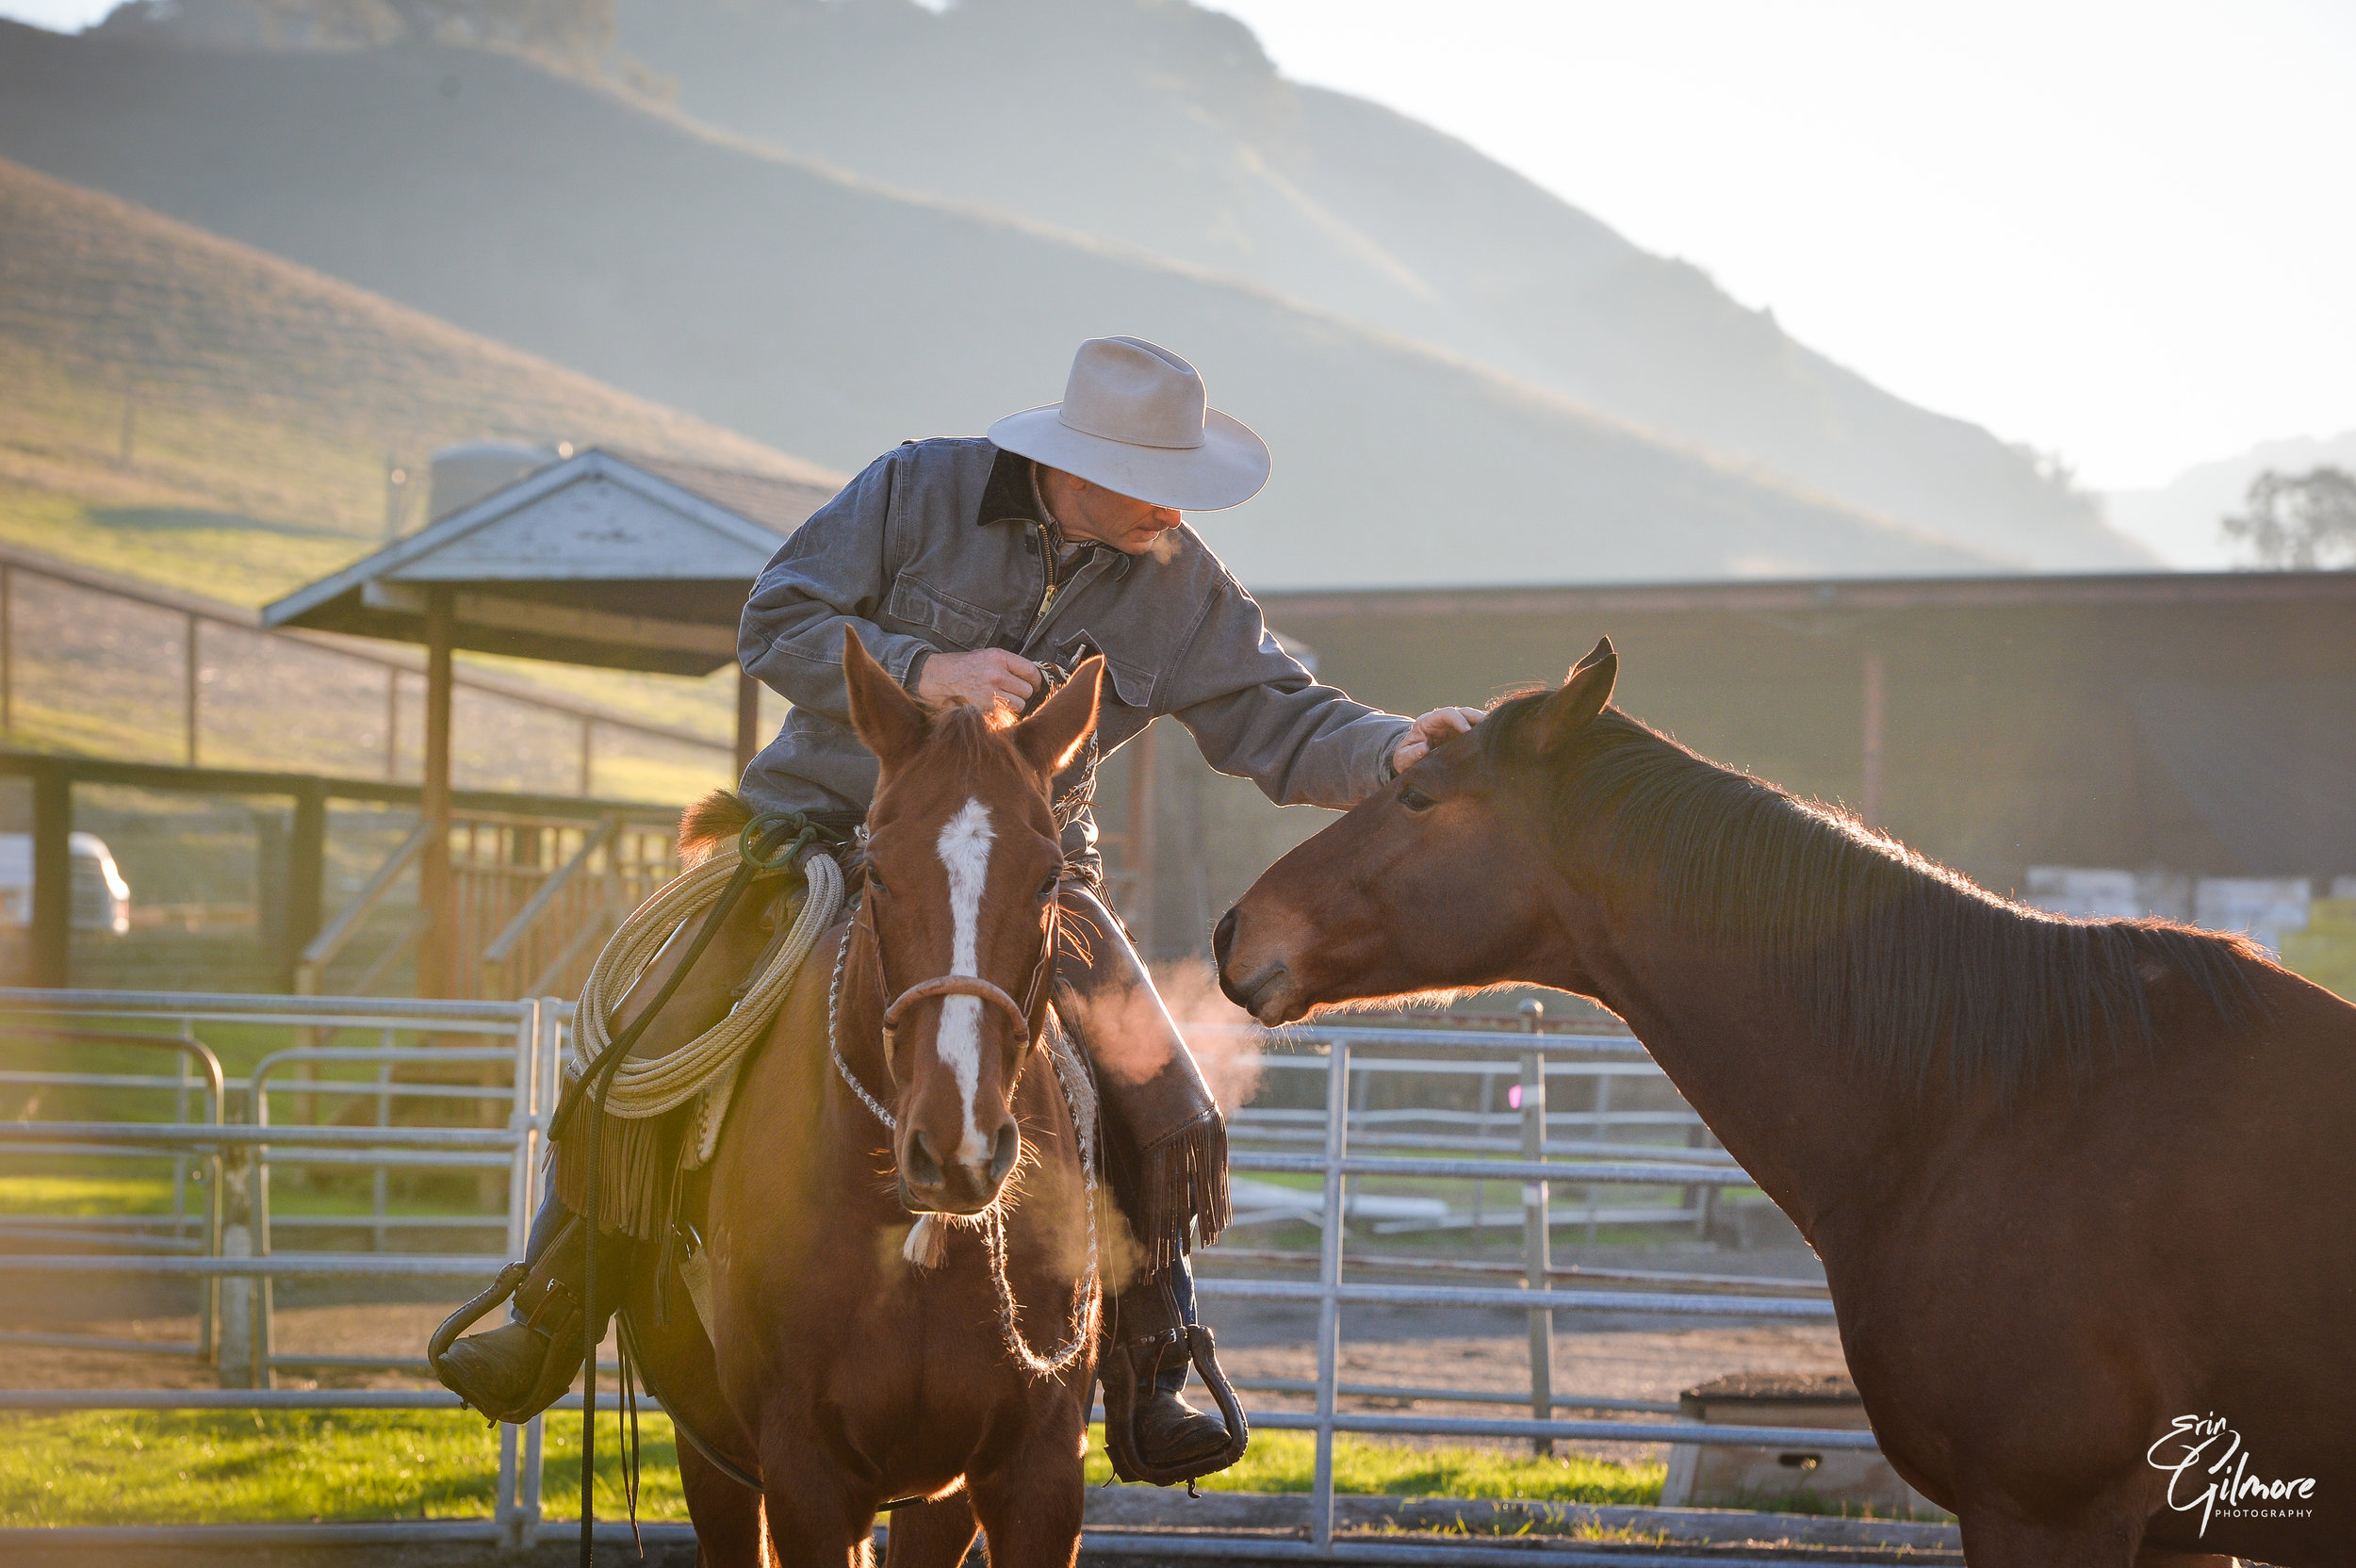 What could you and your horse accomplish if you could move past any obstacles in your path? Chris has worked with horses and humans for the past 40+ years. Whatever your goals, Chris is an expert at setting you and your horse up for success. Choose from these different clinics, all with plenty of one-on-one time, and experience firsthand how Chris can help you. Spots fill quickly so click on the Schedule page and sign up now!